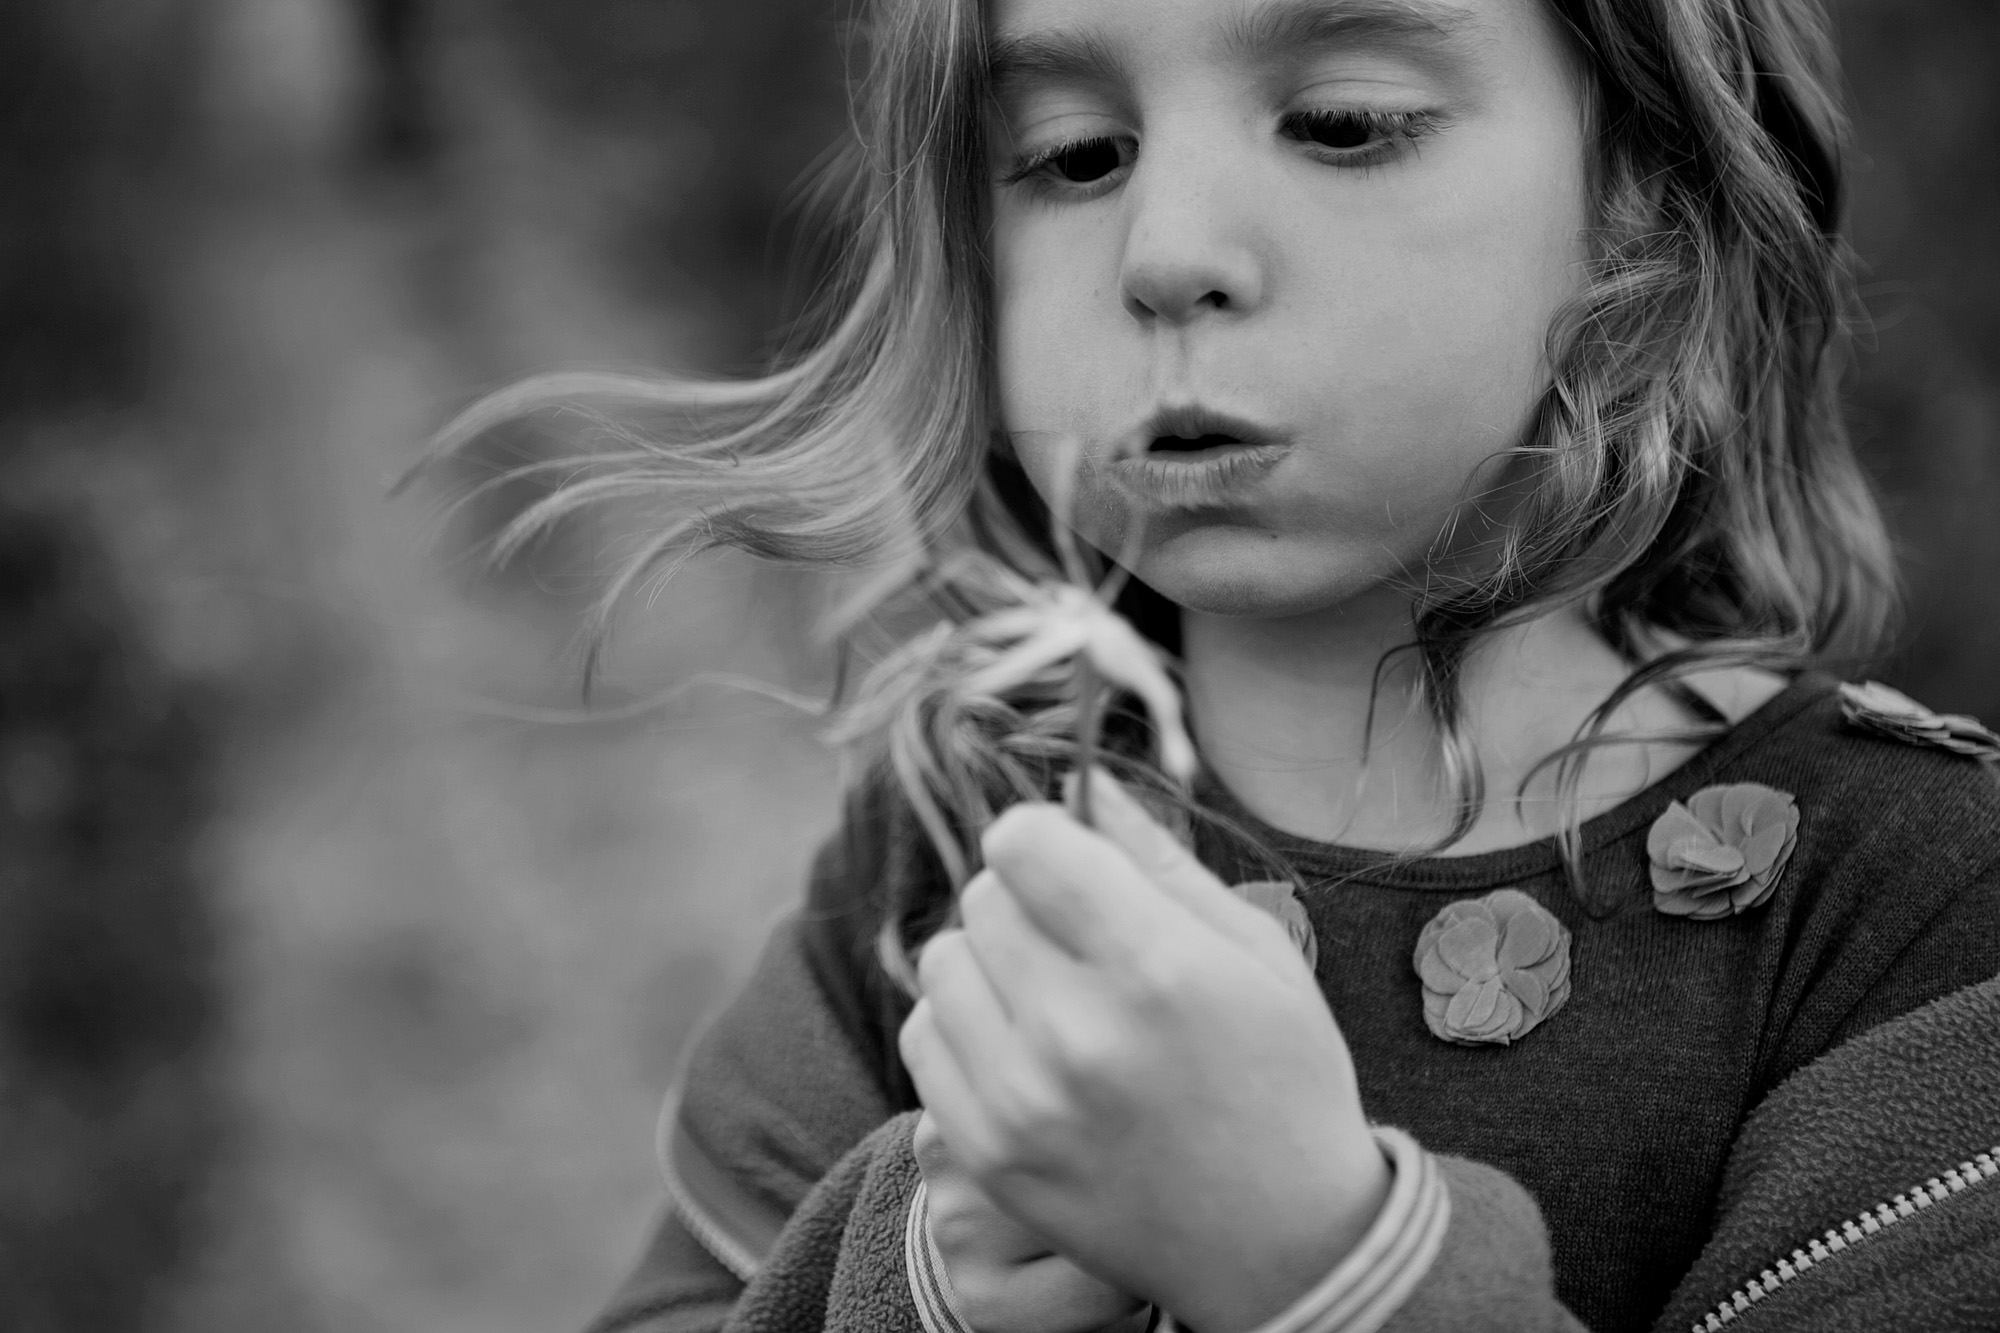 dana-pugh-kids-photographer--2-dandelion